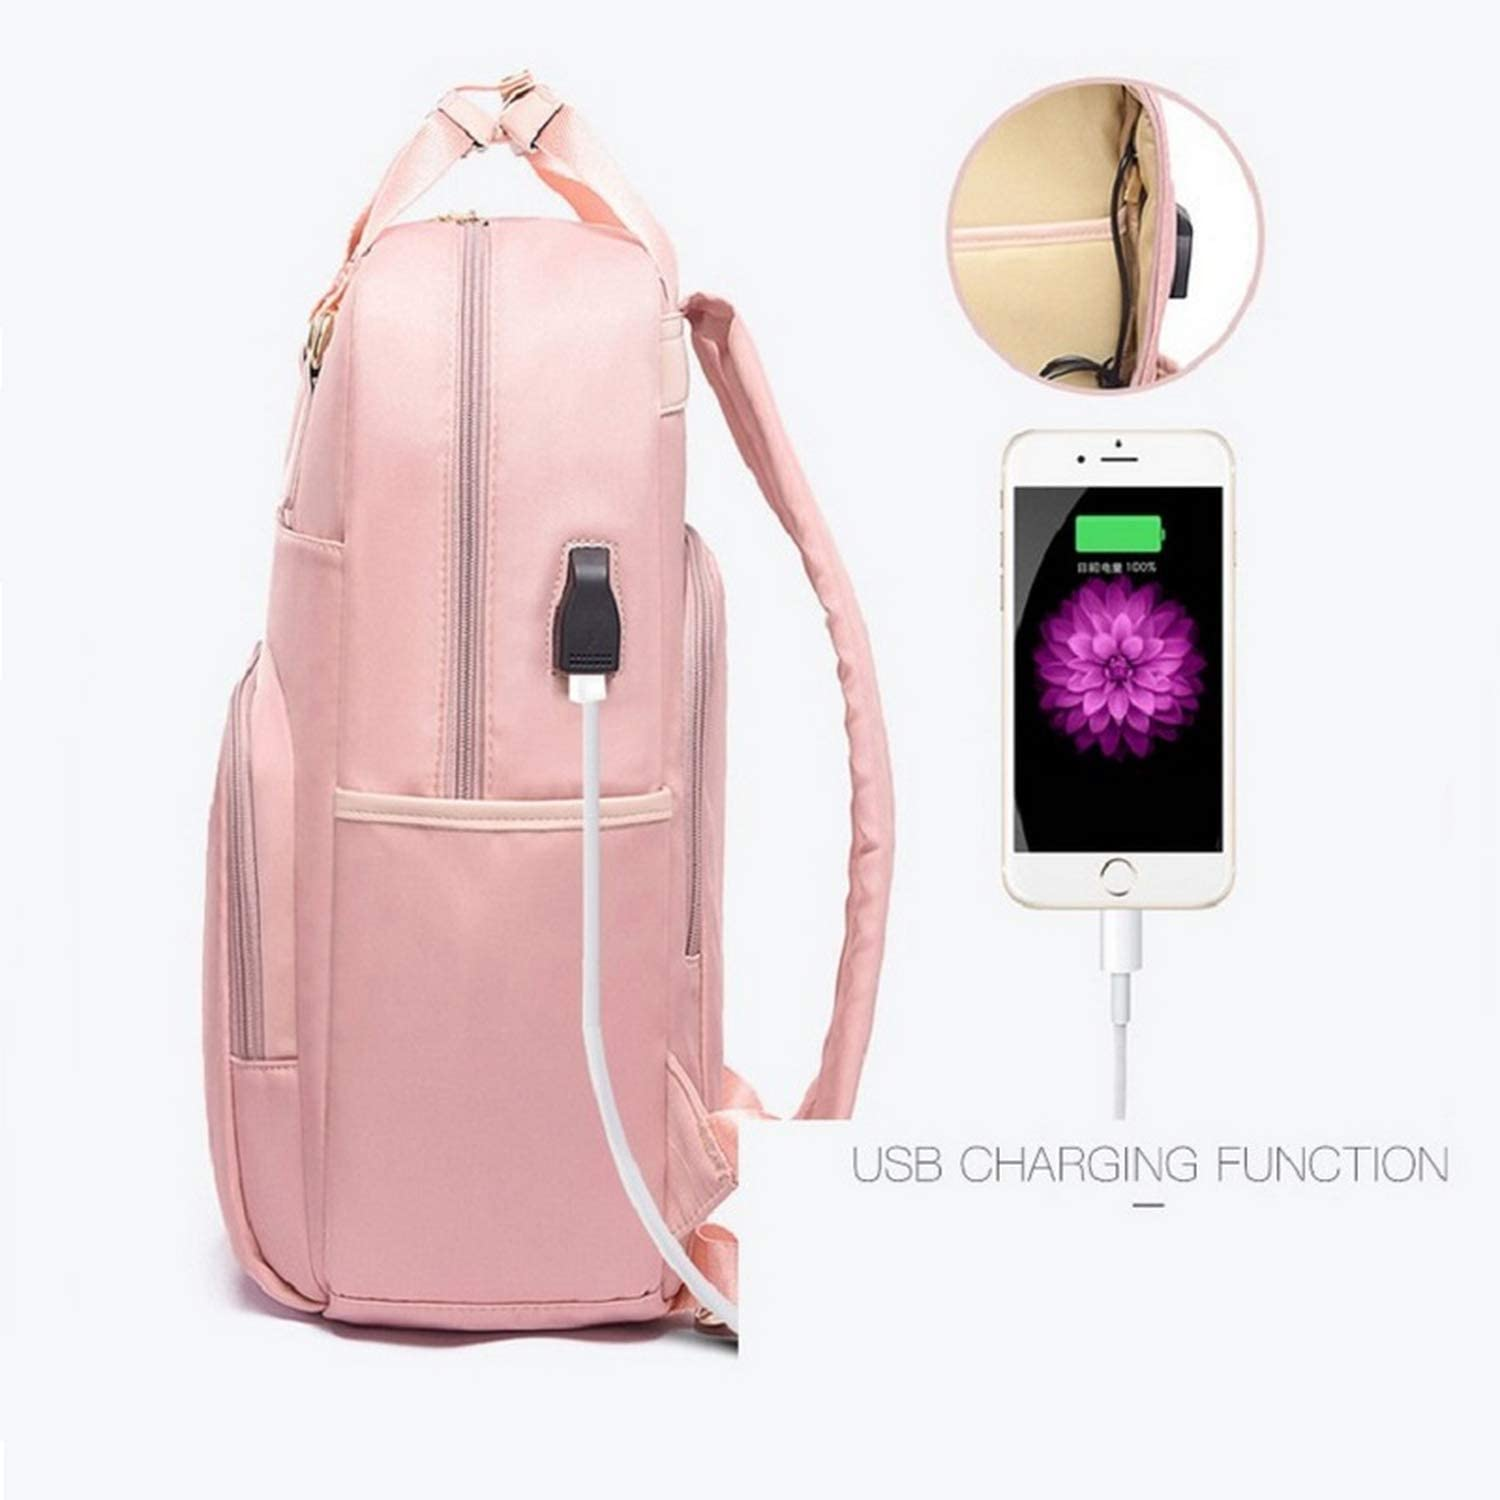 13 14 15.6 Inch Waterproof Laptop Backpack Female Fashion Girl 2019 USB Anti Theft Backpack Womens Backpack Large Multifunctional,Pink,15.6 inch